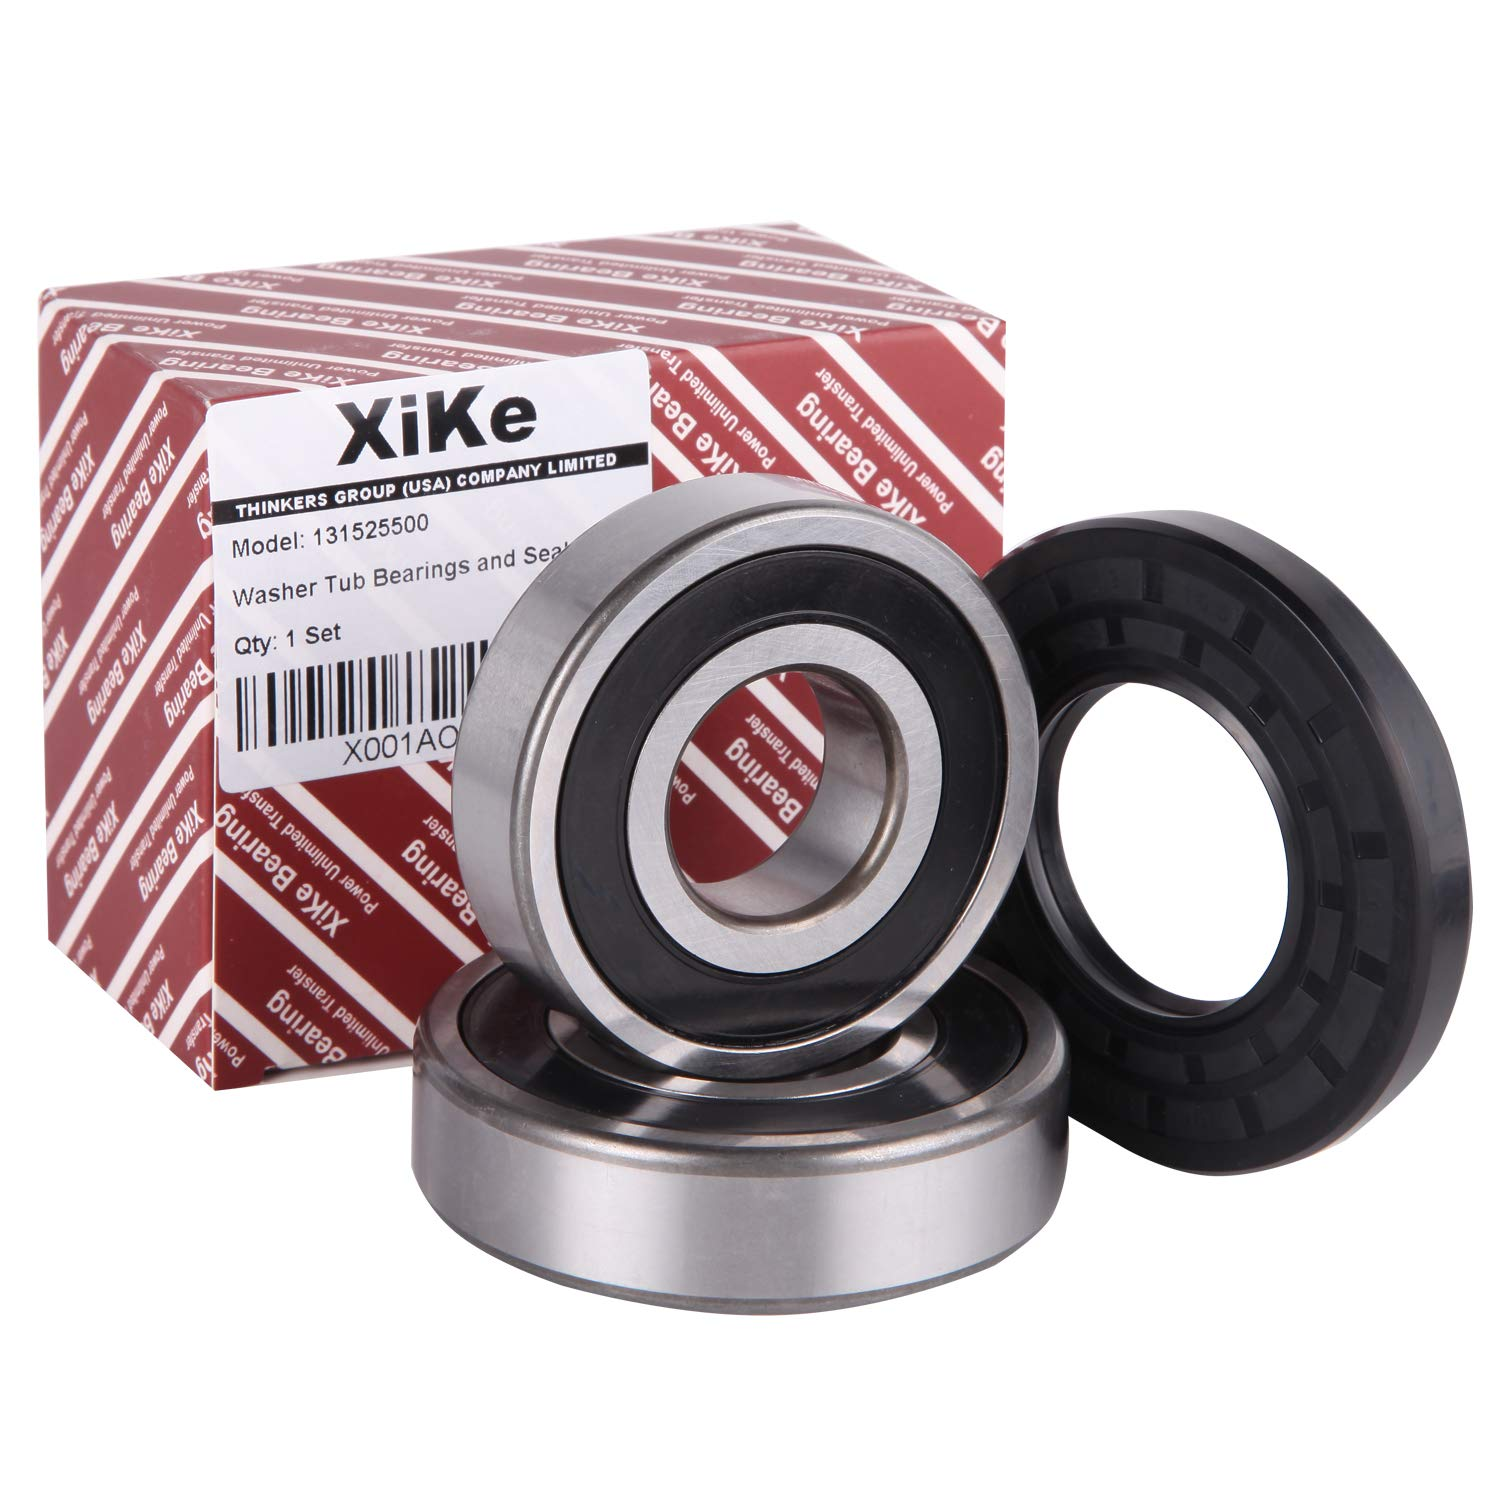 XiKe 131525500 Front Load Washer Tub Bearing & Seal Kit, Rotate Quiet and Durable Replacement for Kenmore, Frigidaire, GE, 131275200, 131462800, 407639, AP2578105, B018HFK0A4 Etc.